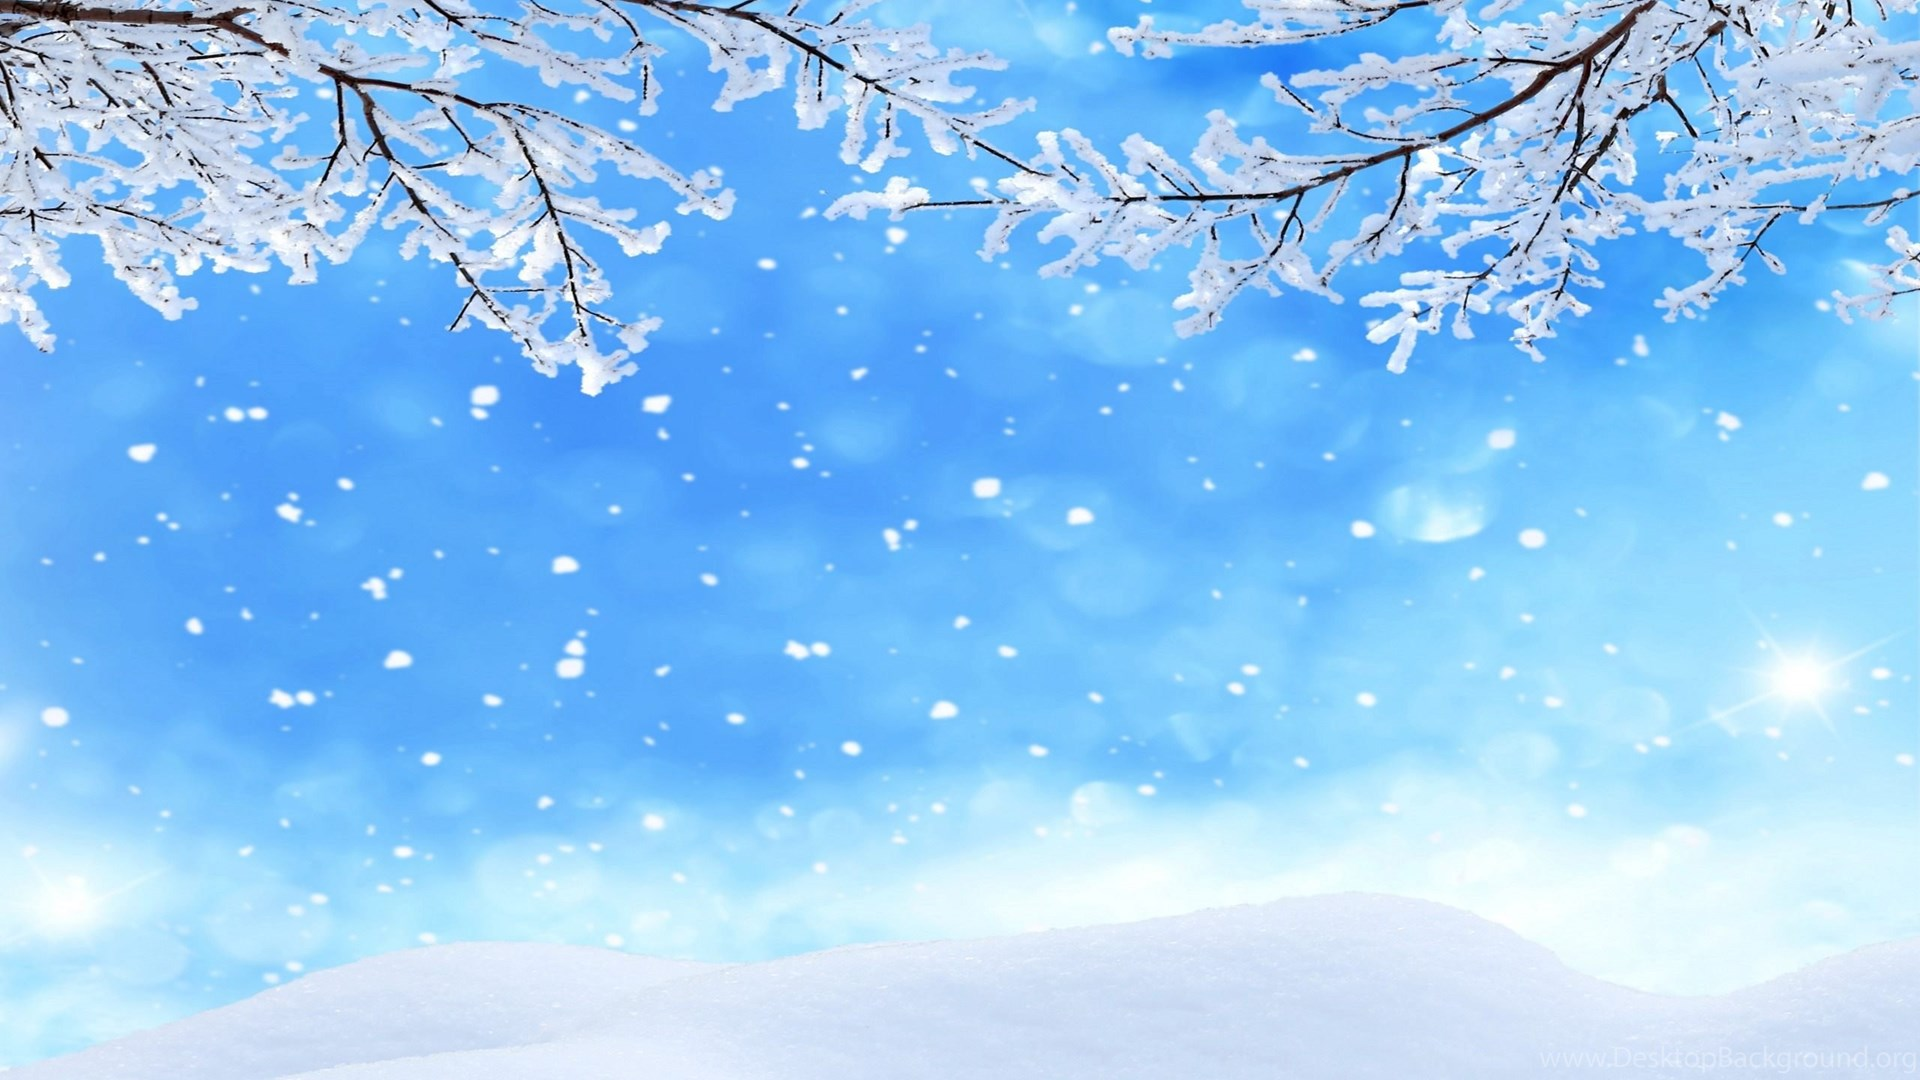 Winter Backgrounds Snowflakes Wallpapers HD Free Download